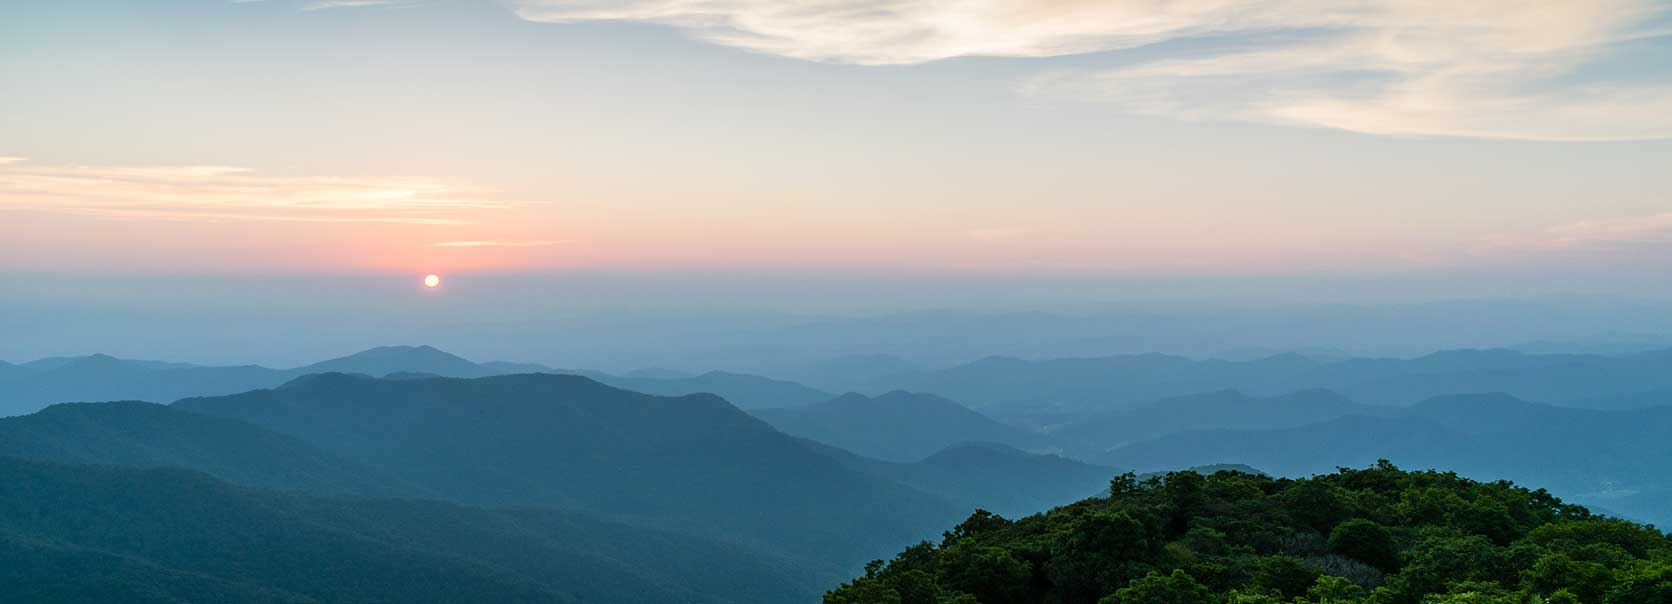 view-of-blue-ridge-mountains